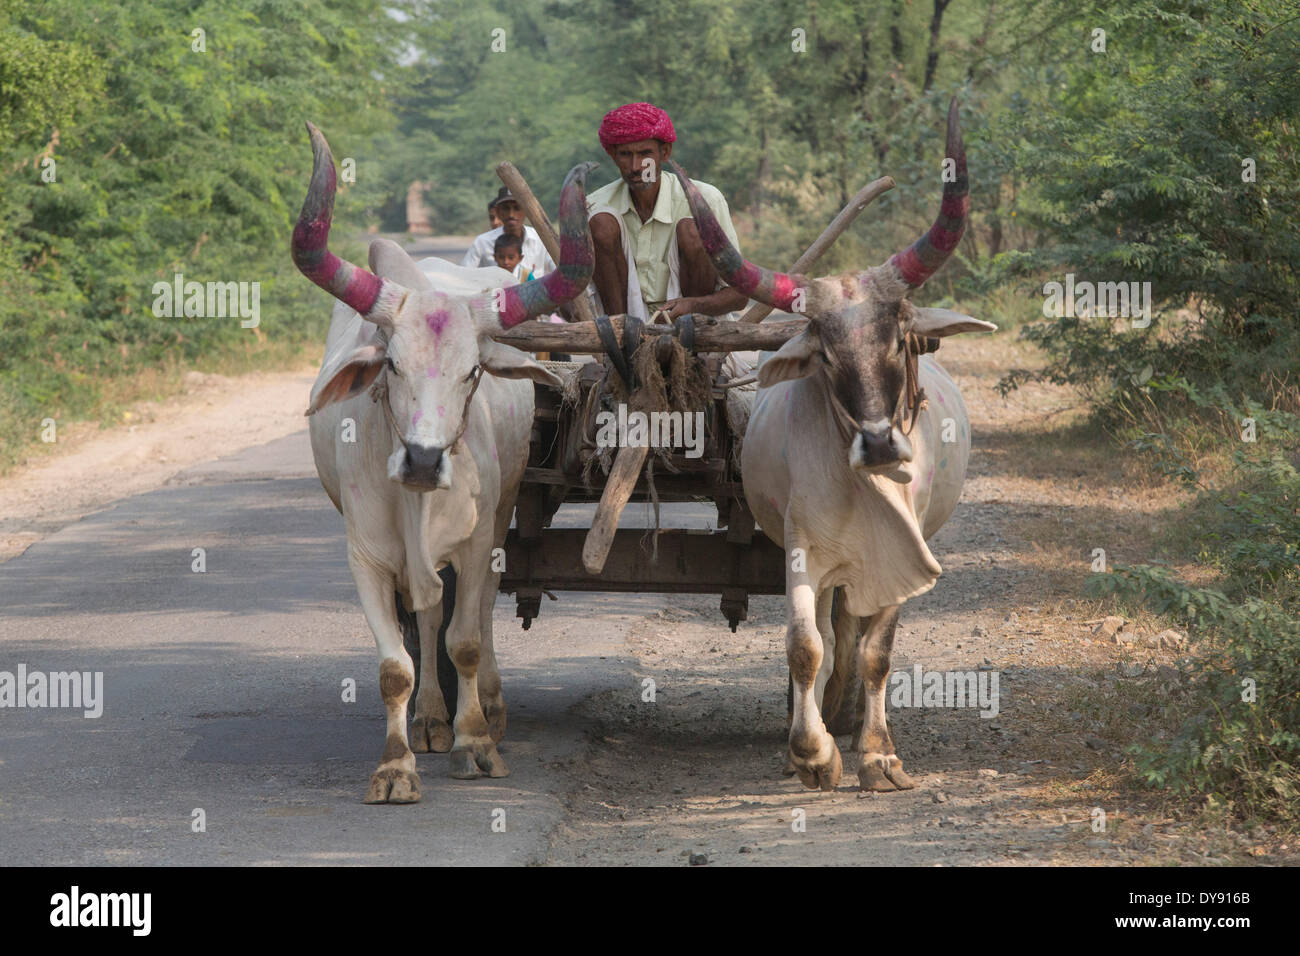 Agriculture, India, Asia, India, agriculture, carts, oxen, cows - Stock Image